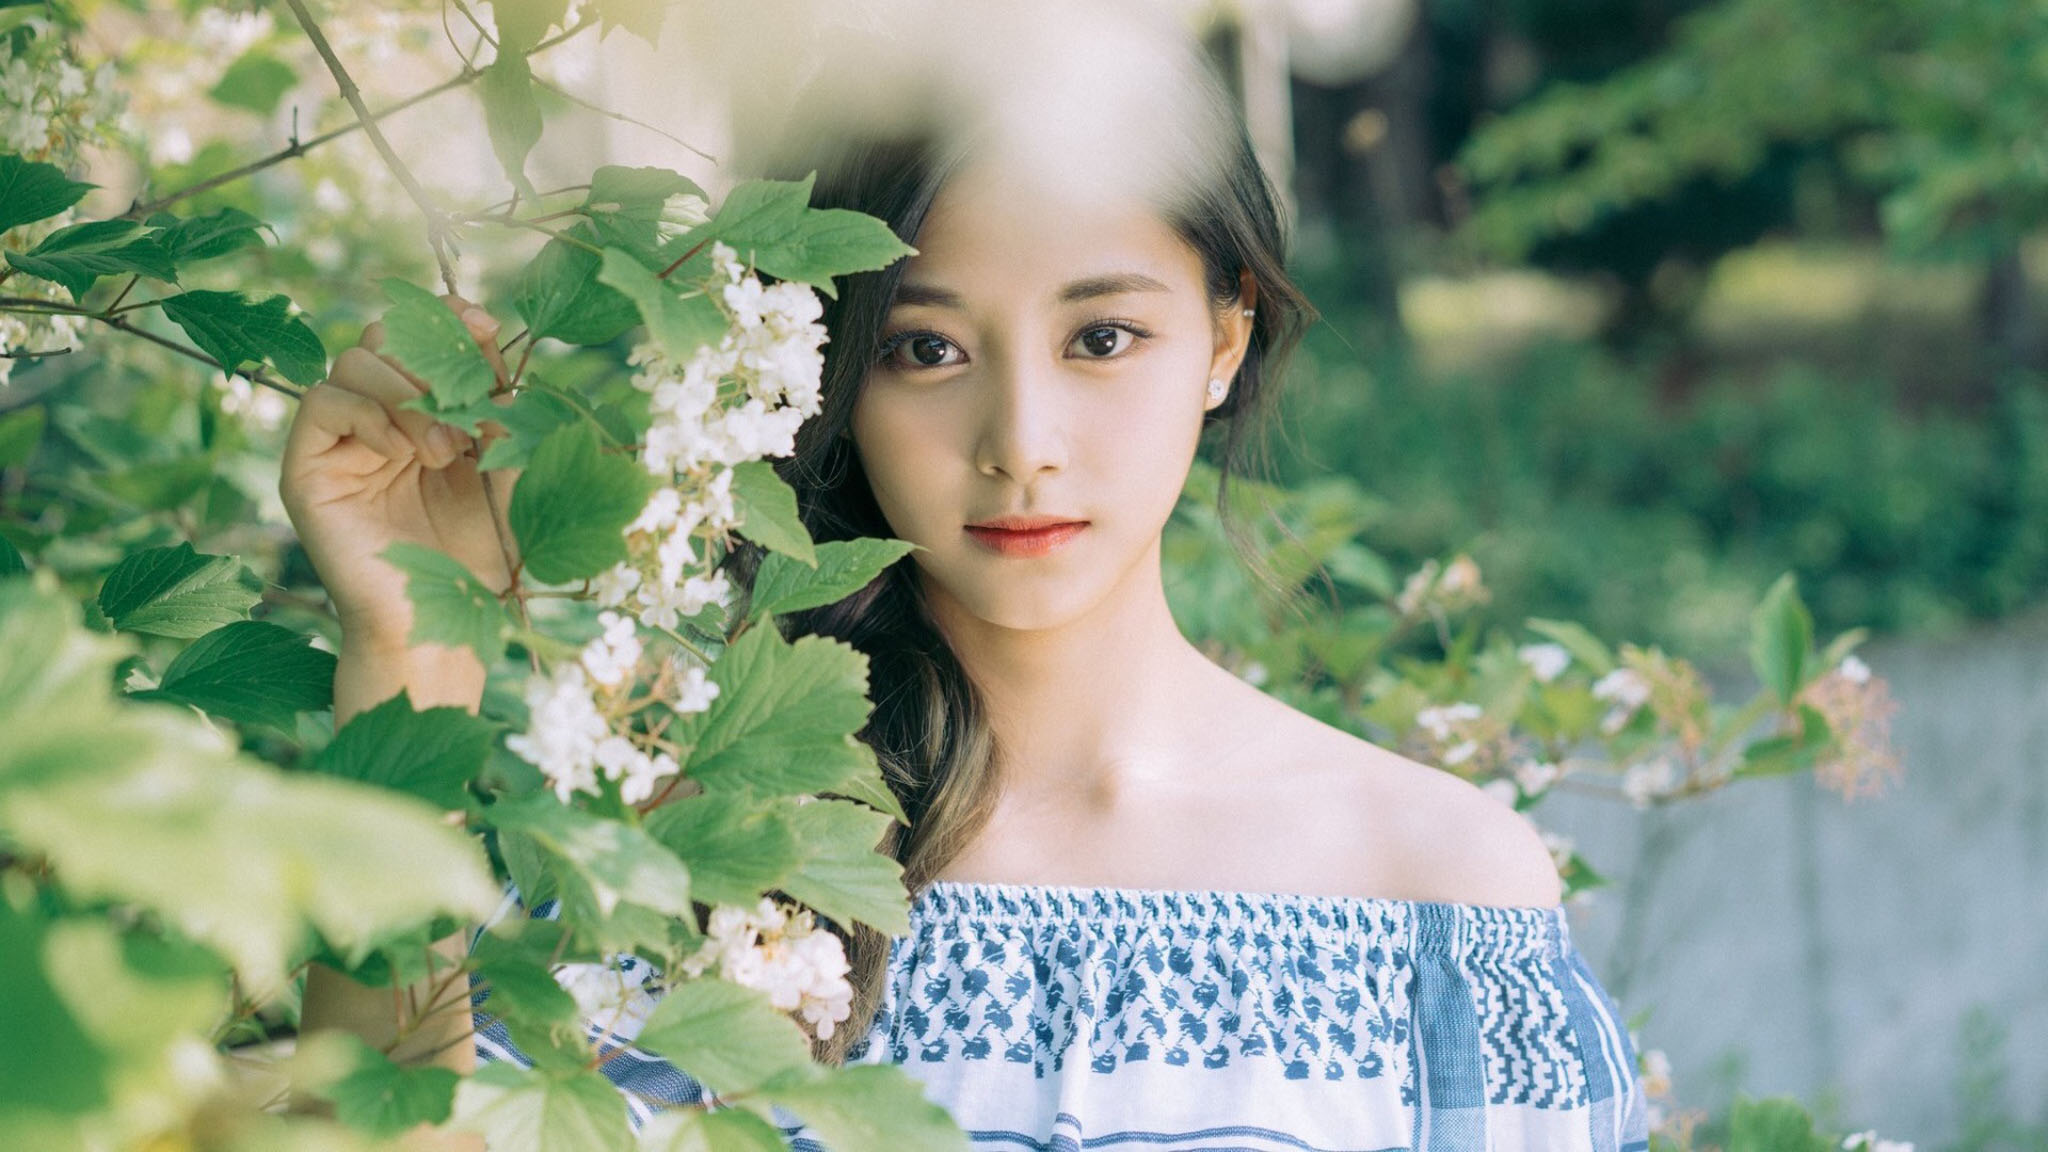 Twice Jyp Ent Images Tzuyu 06 Hd Wallpaper And Background Photos